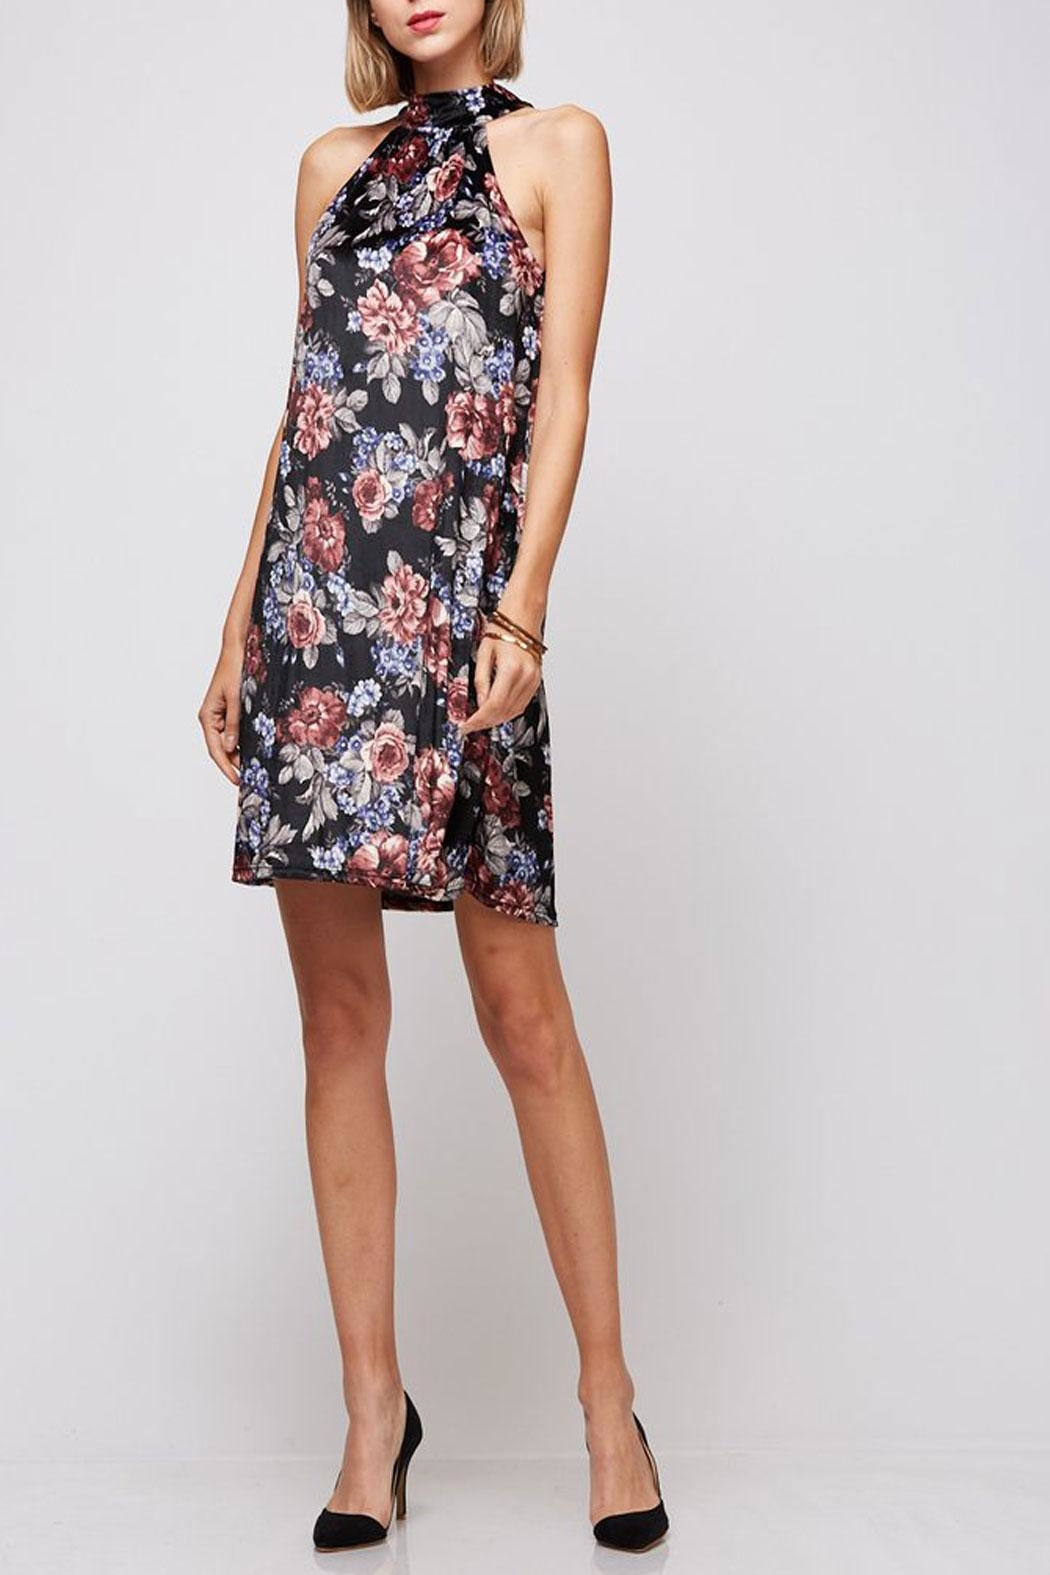 Peach Love California Yuni Floral Dress - Main Image